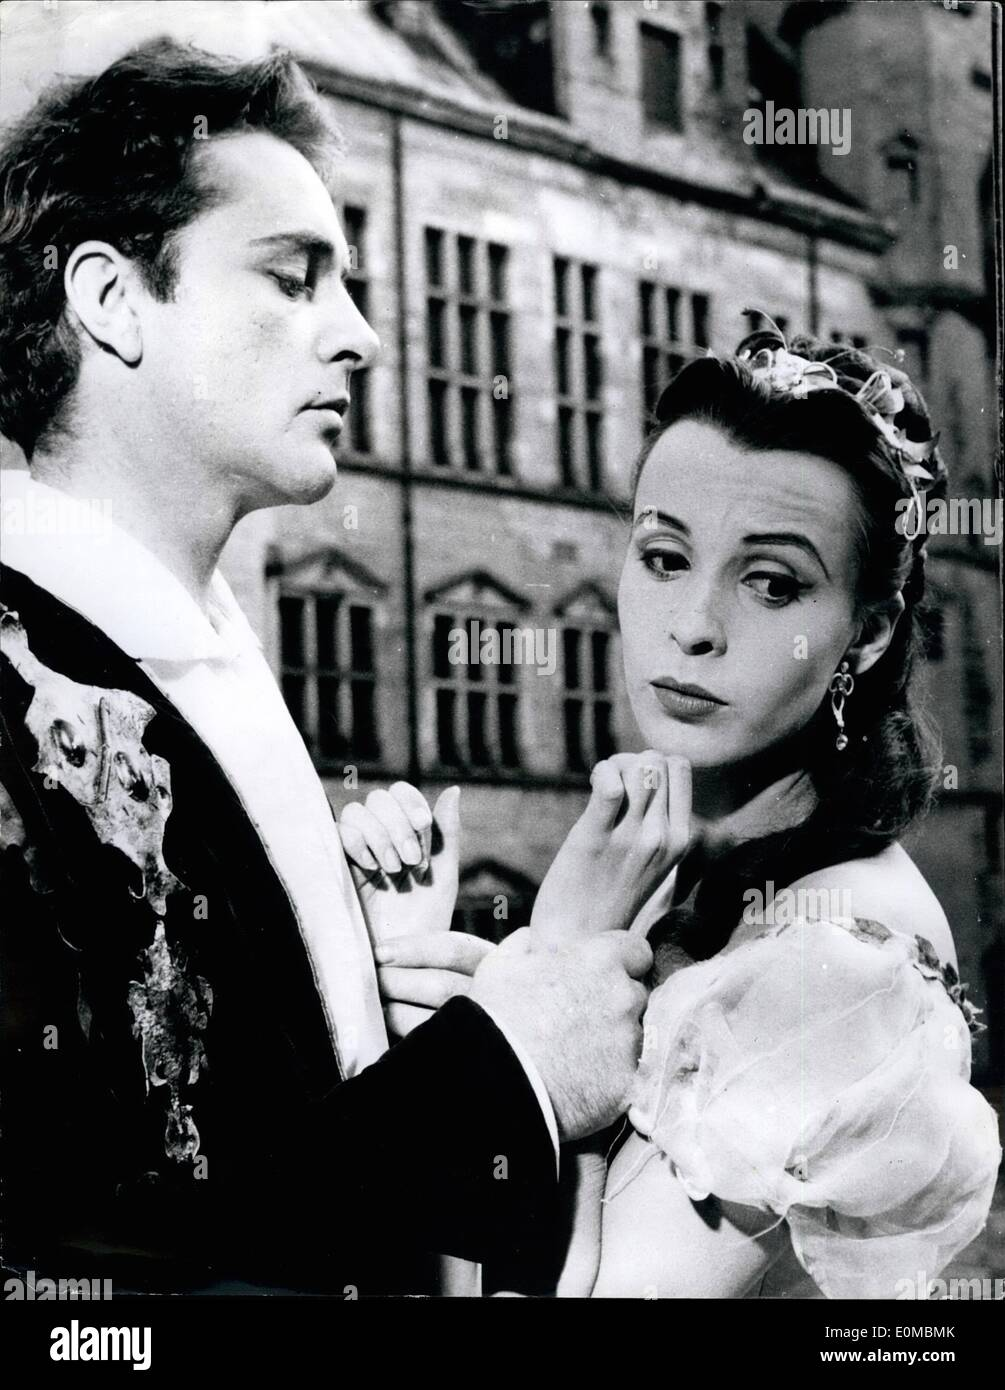 Jun. 06, 1954 - ''Hamlet'' in Denmark.: Photo shows Richard Burton as Hamlet, and Claire Bloom as Phelia seen in the court yard - Stock Image